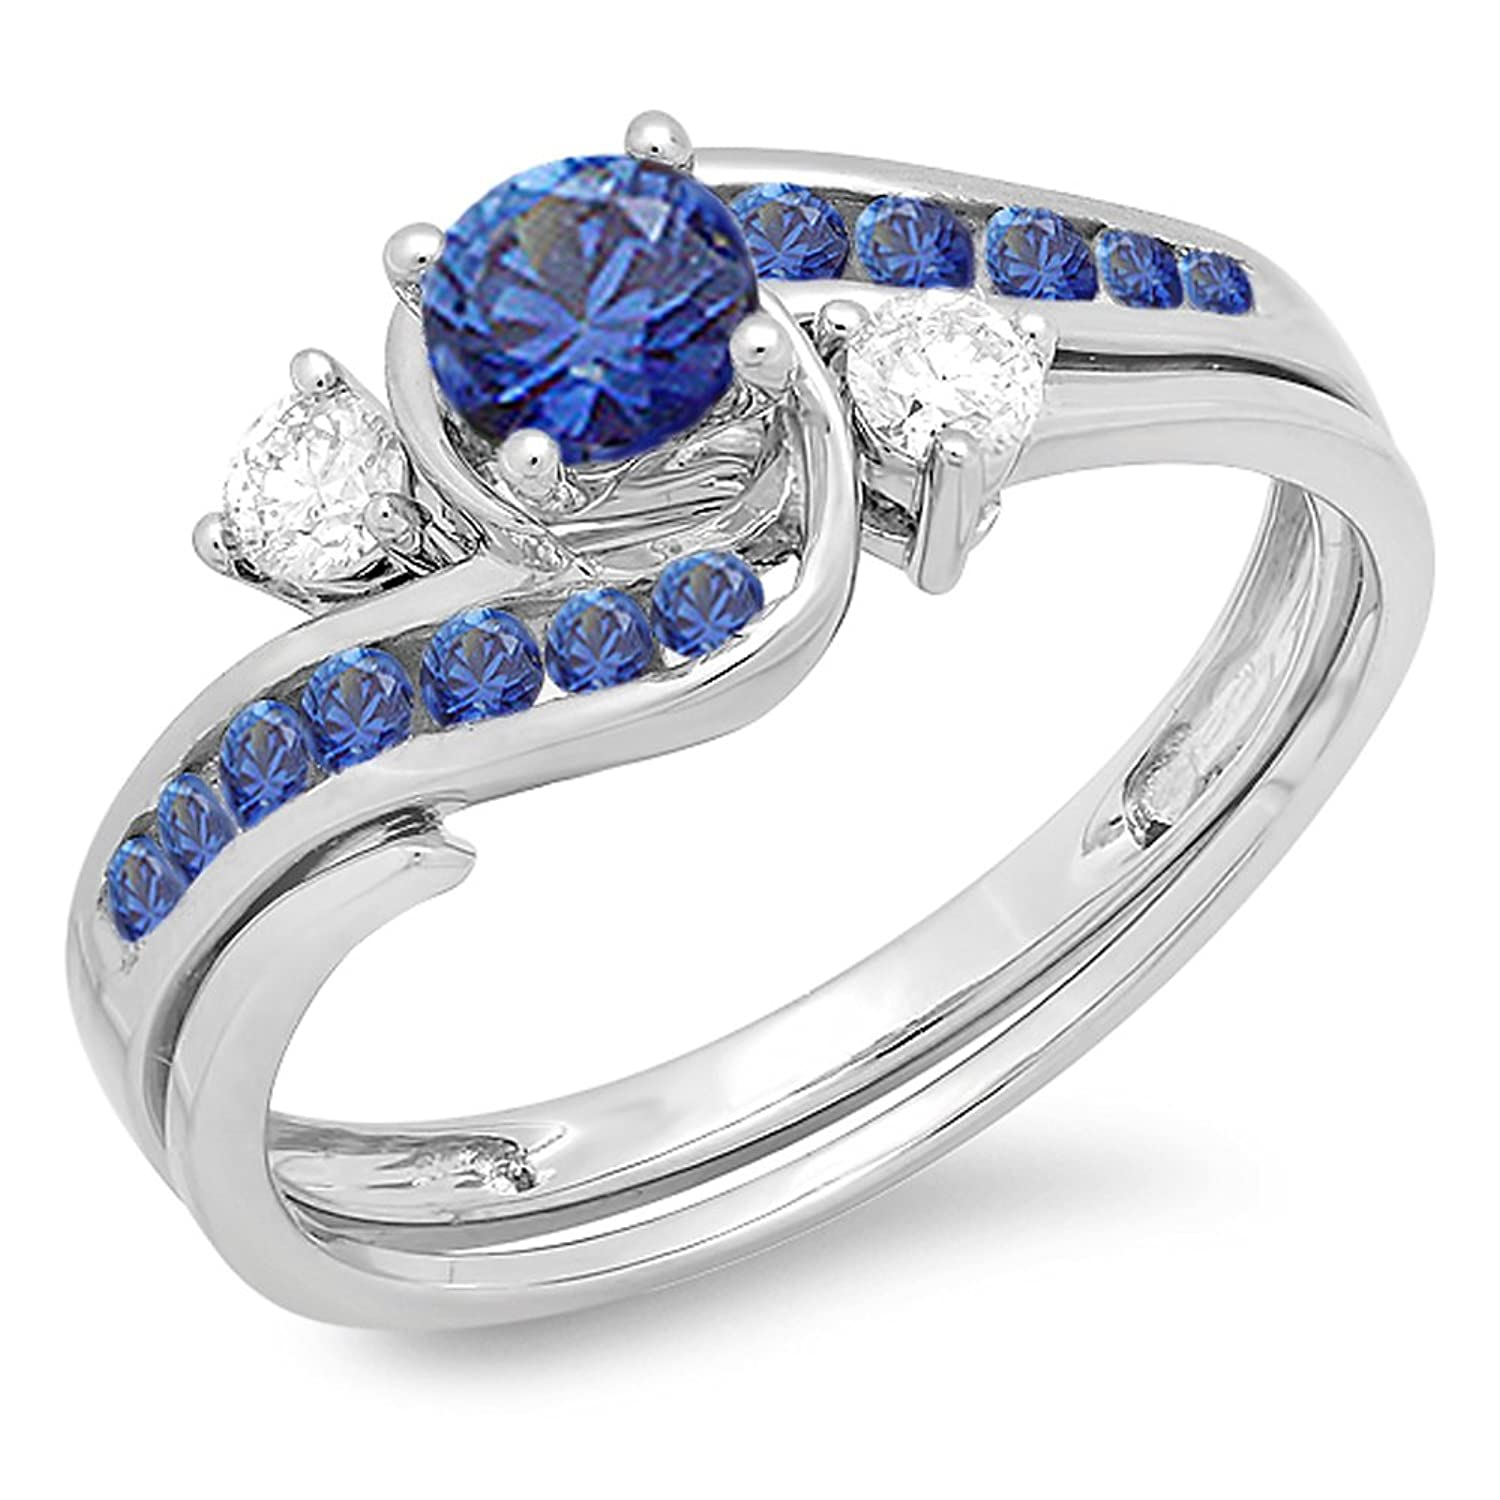 nl princess ring set diamond wg wedding bridal engagement sapphire with sets channel blue trio white gold in jewelry cut